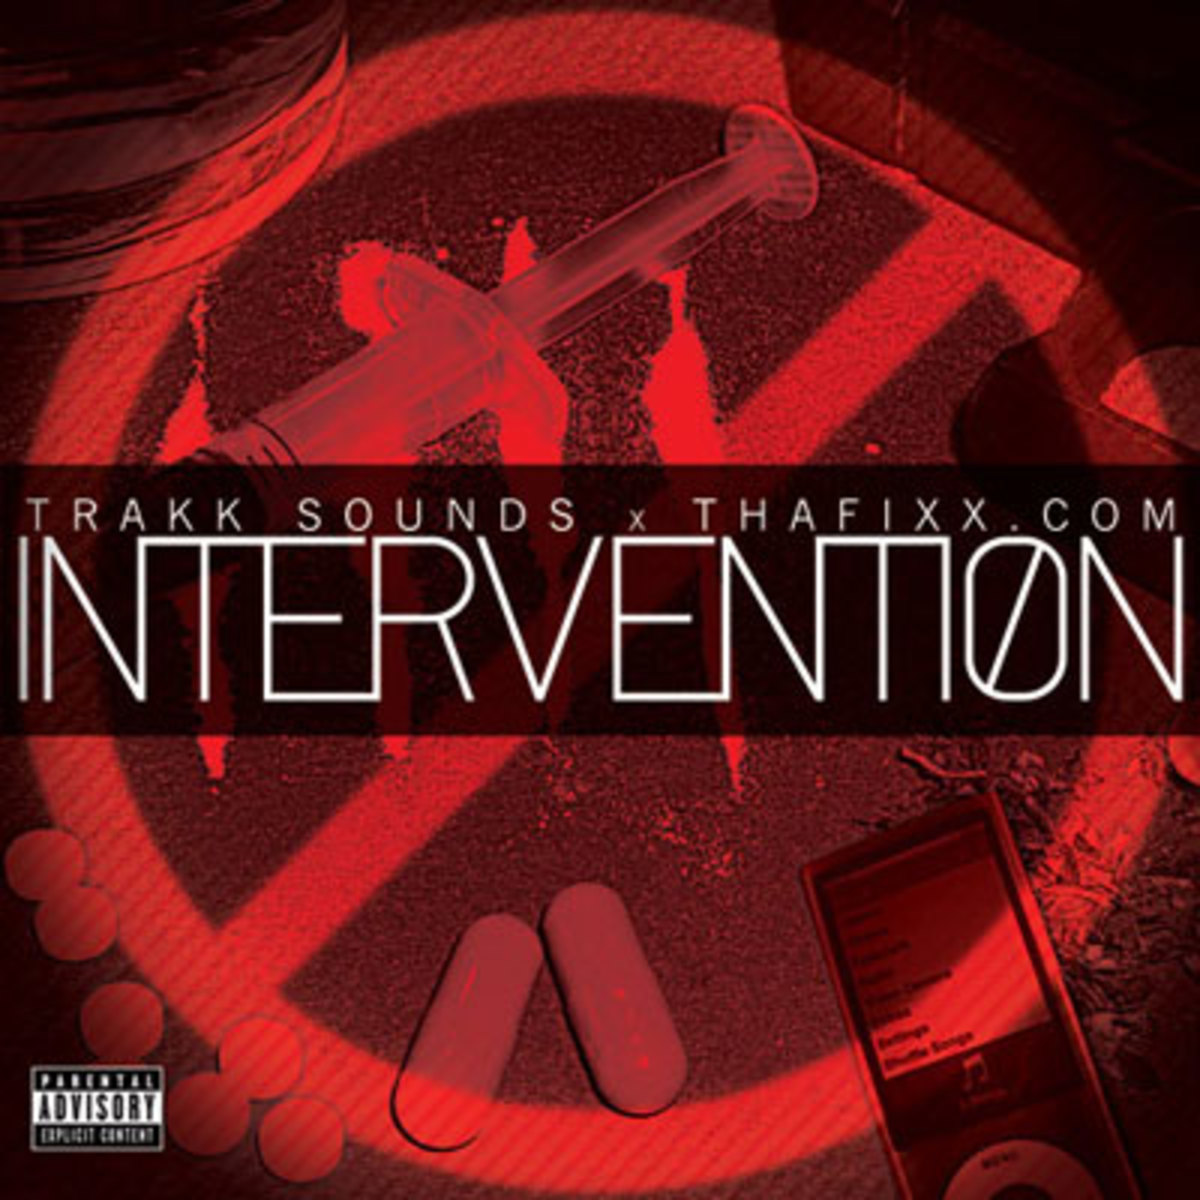 trakksounds-intervention.jpg